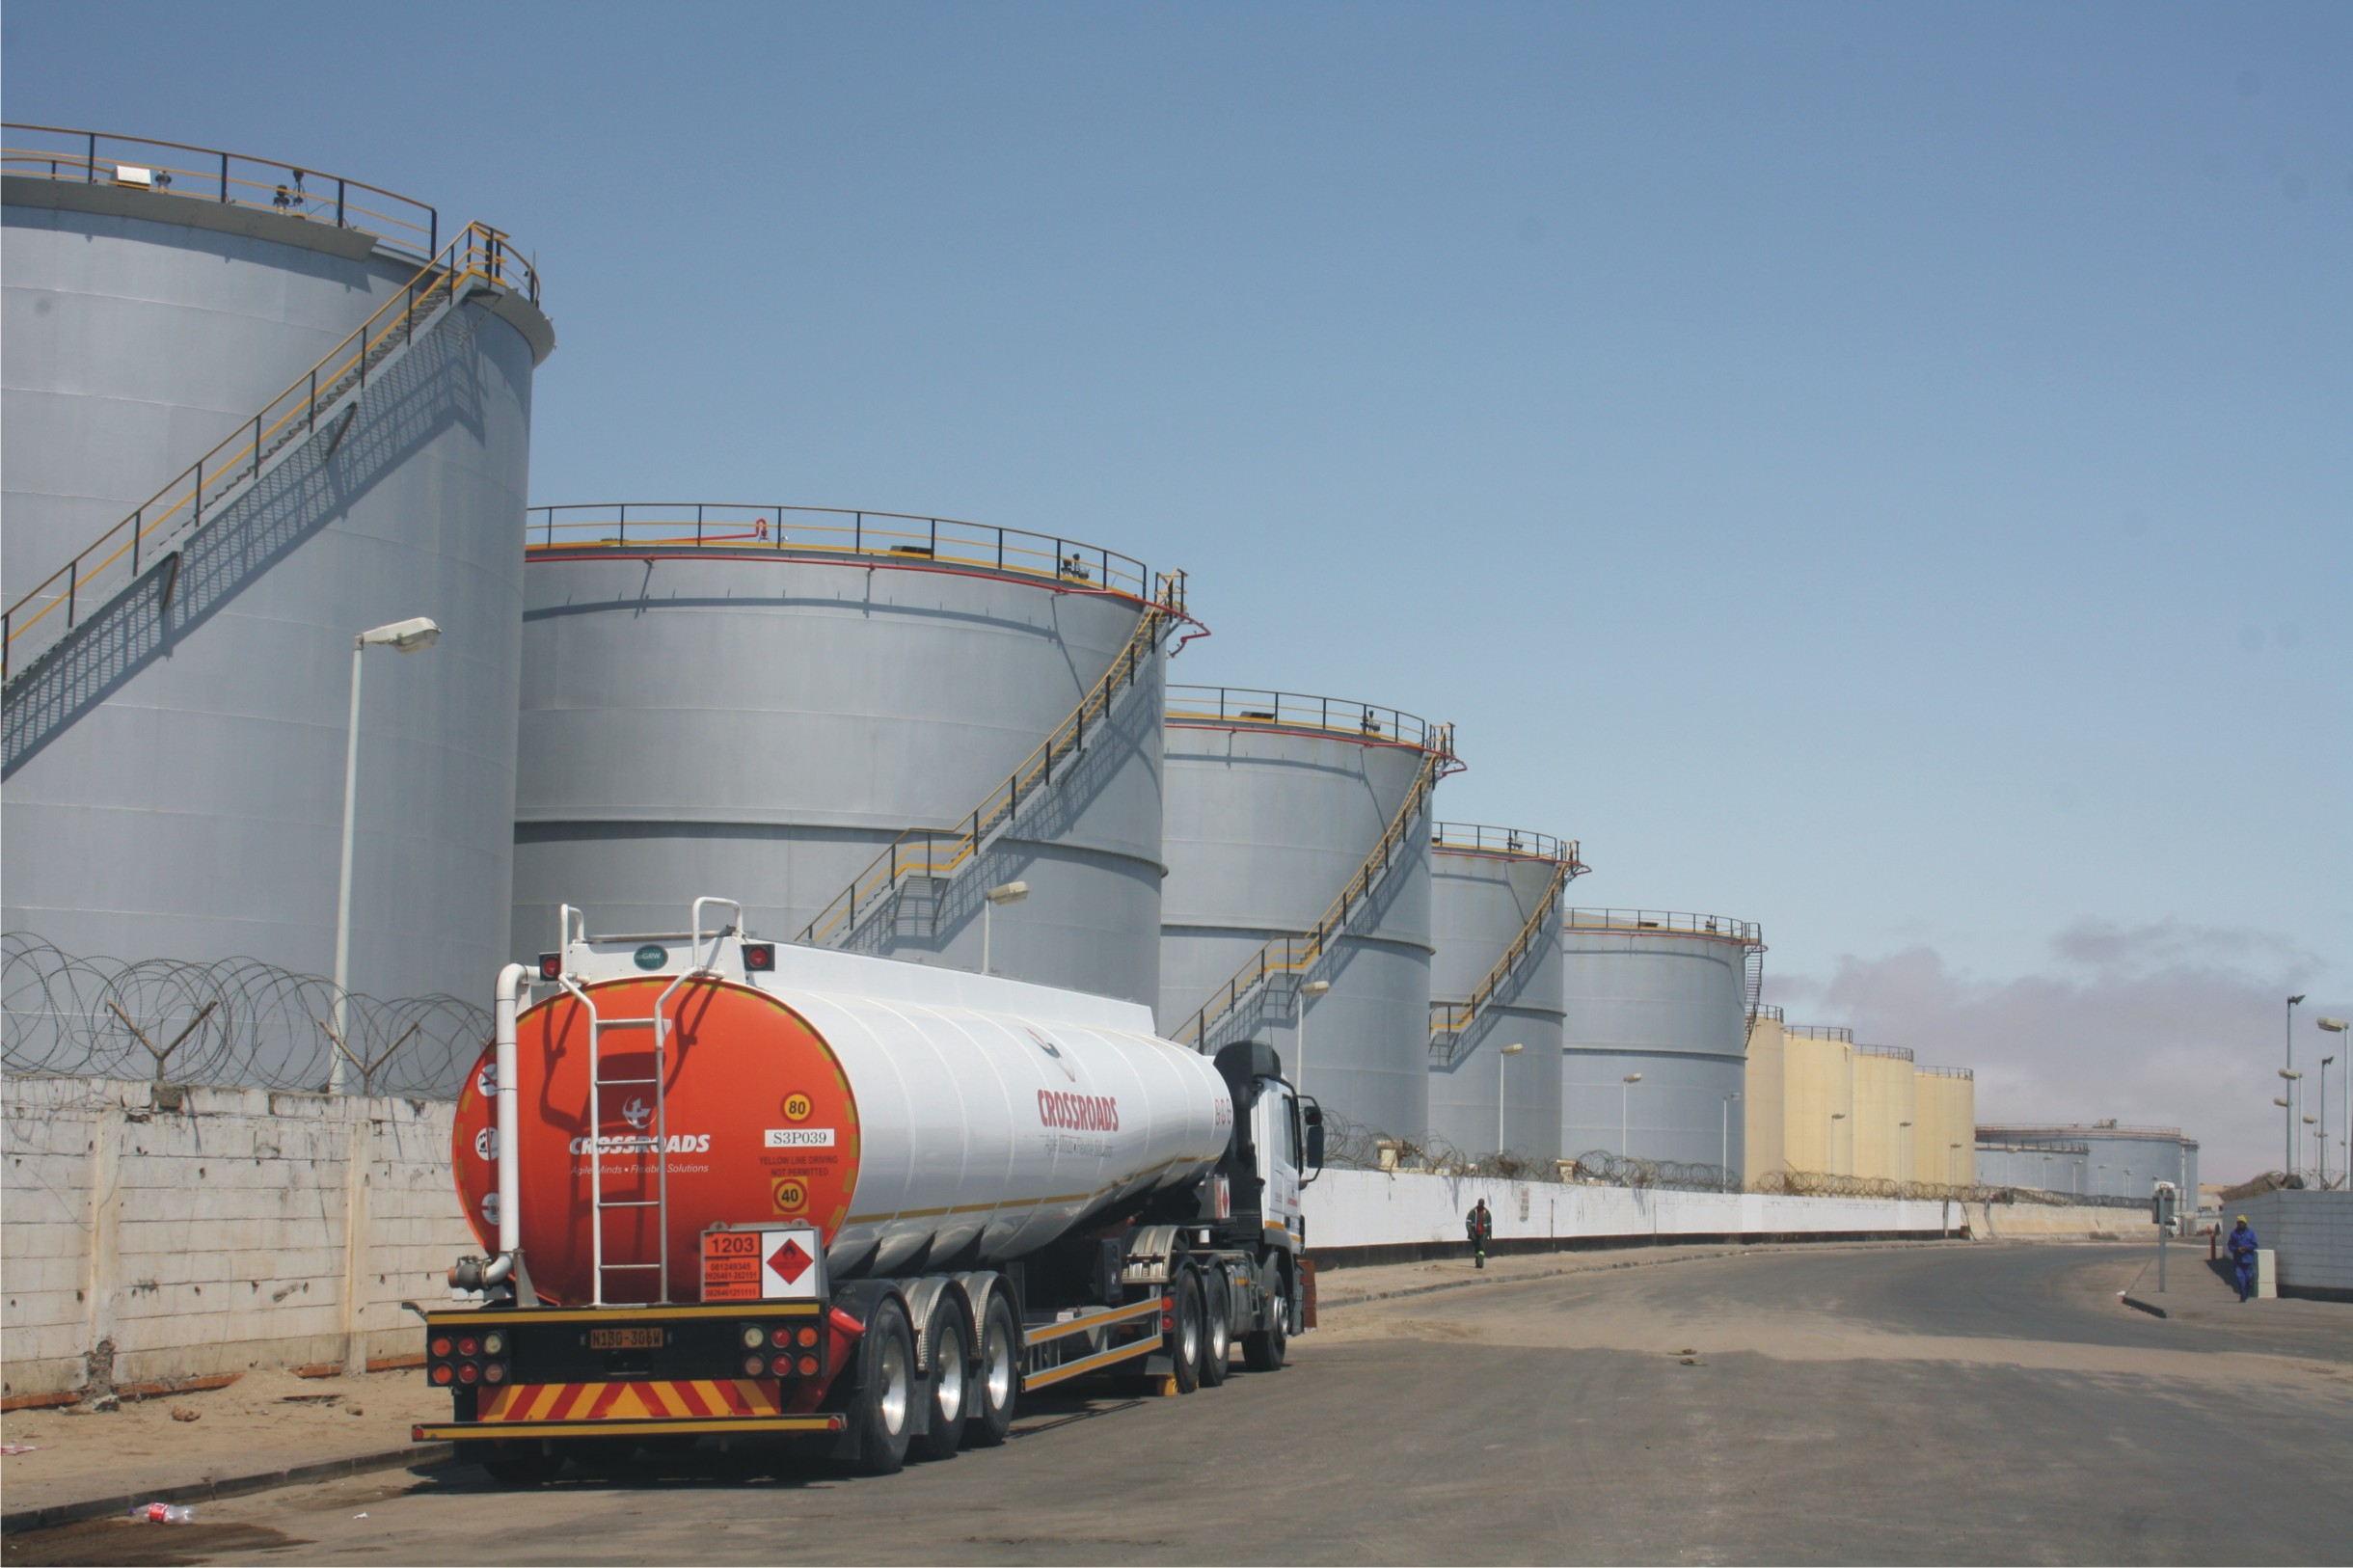 Indian Firm Interested in Iran Crude Storage Venture | Financial Tribune